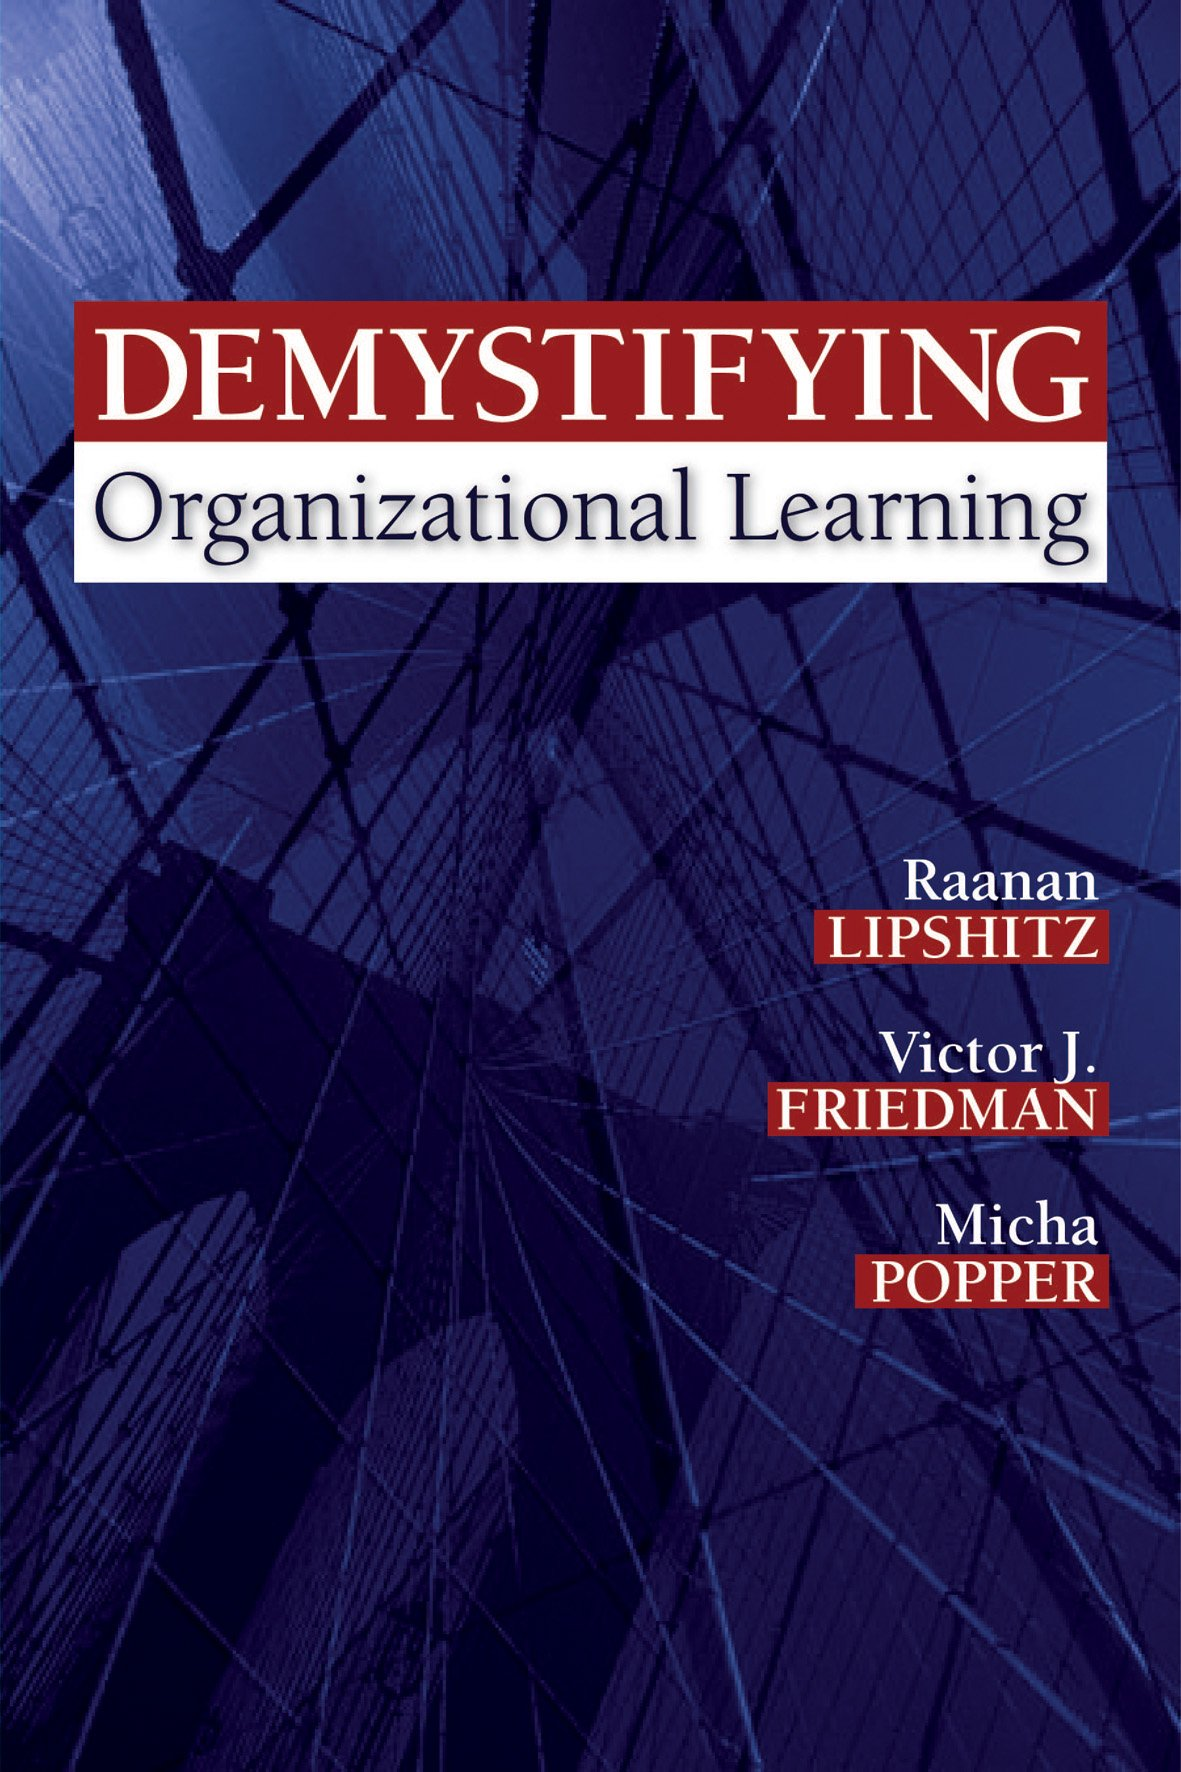 Demystifying Organizational Learning